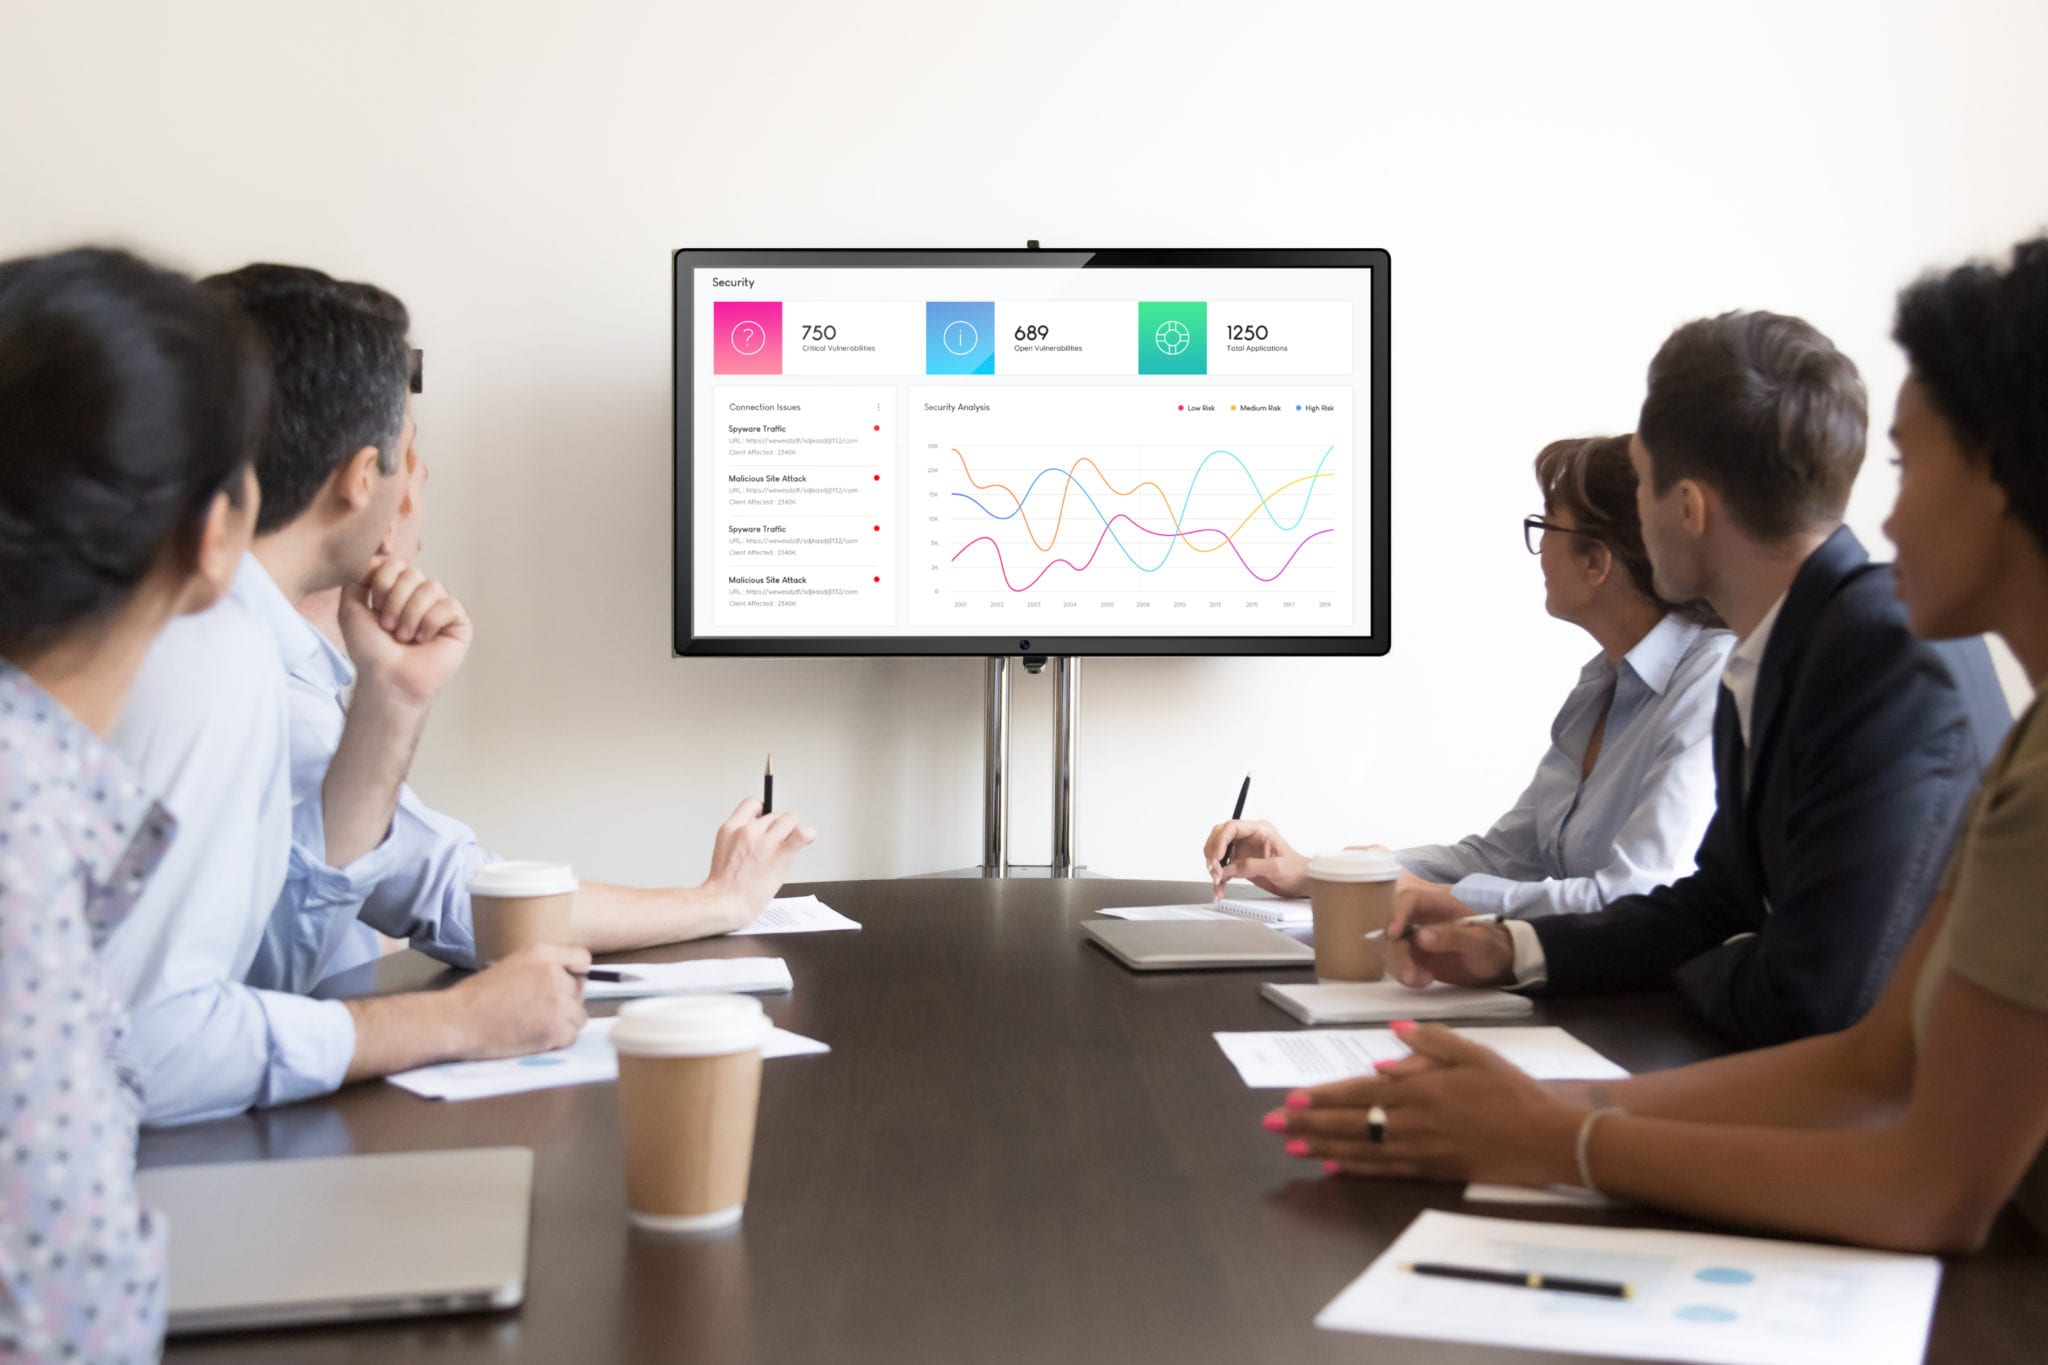 corporate office digital signage for internal communications in meeting rooms and boardrooms